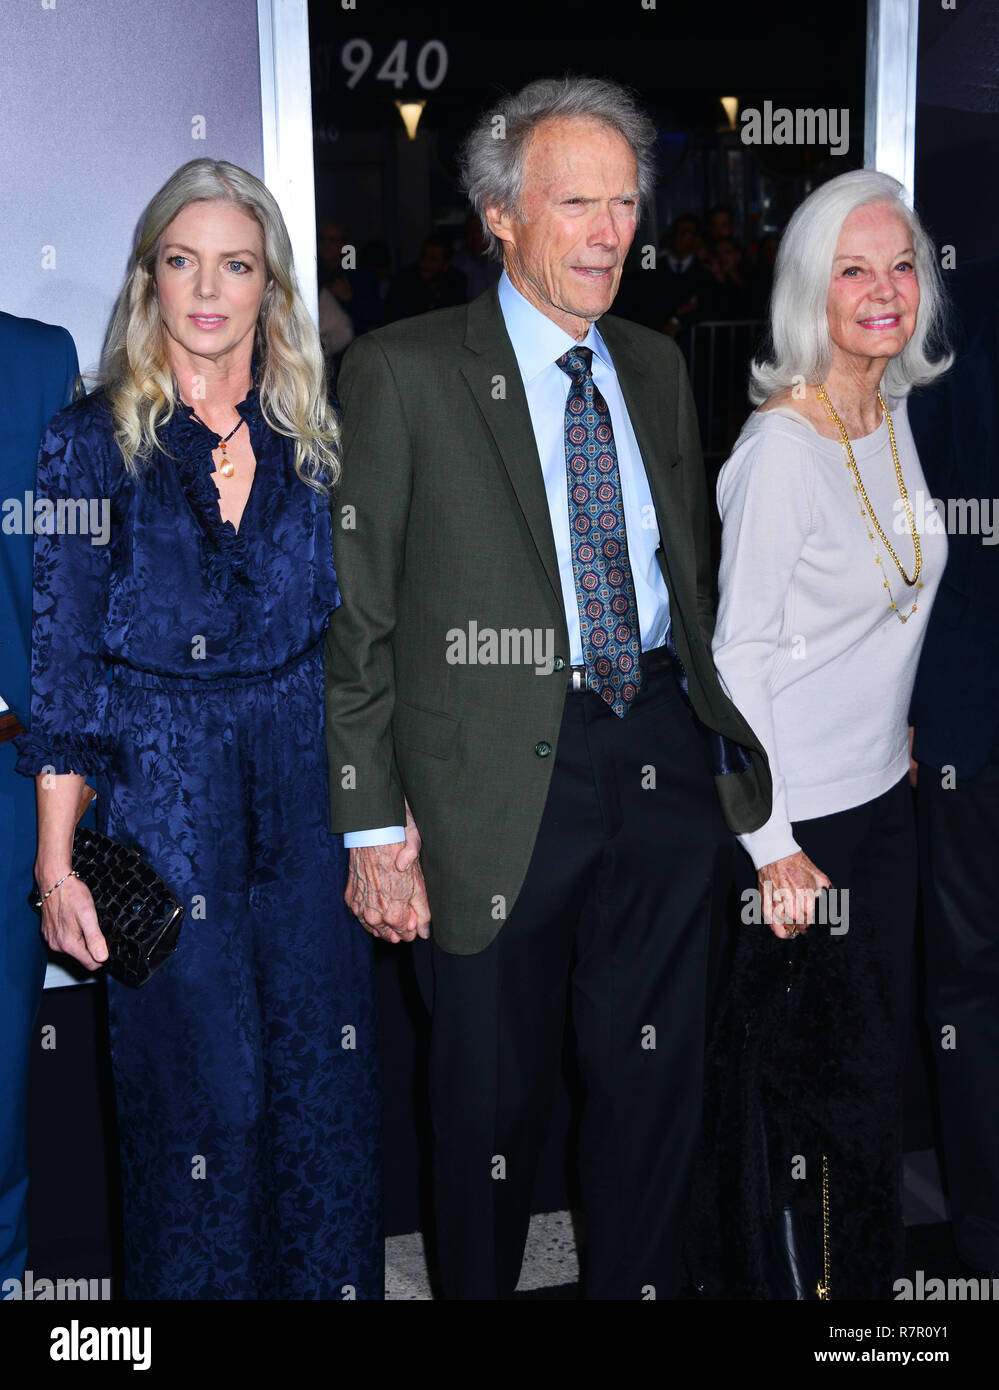 Westwood, California, USA. 10th Dec 2018. Clint Eastwood and Christina Sandera 219 attends Warner Bros. Pictures World Premiere Of 'The Mule' at Regency Village Theatre on December 10, 2018 in Westwood, California. Credit: Tsuni / USA/Alamy Live News Stock Photo